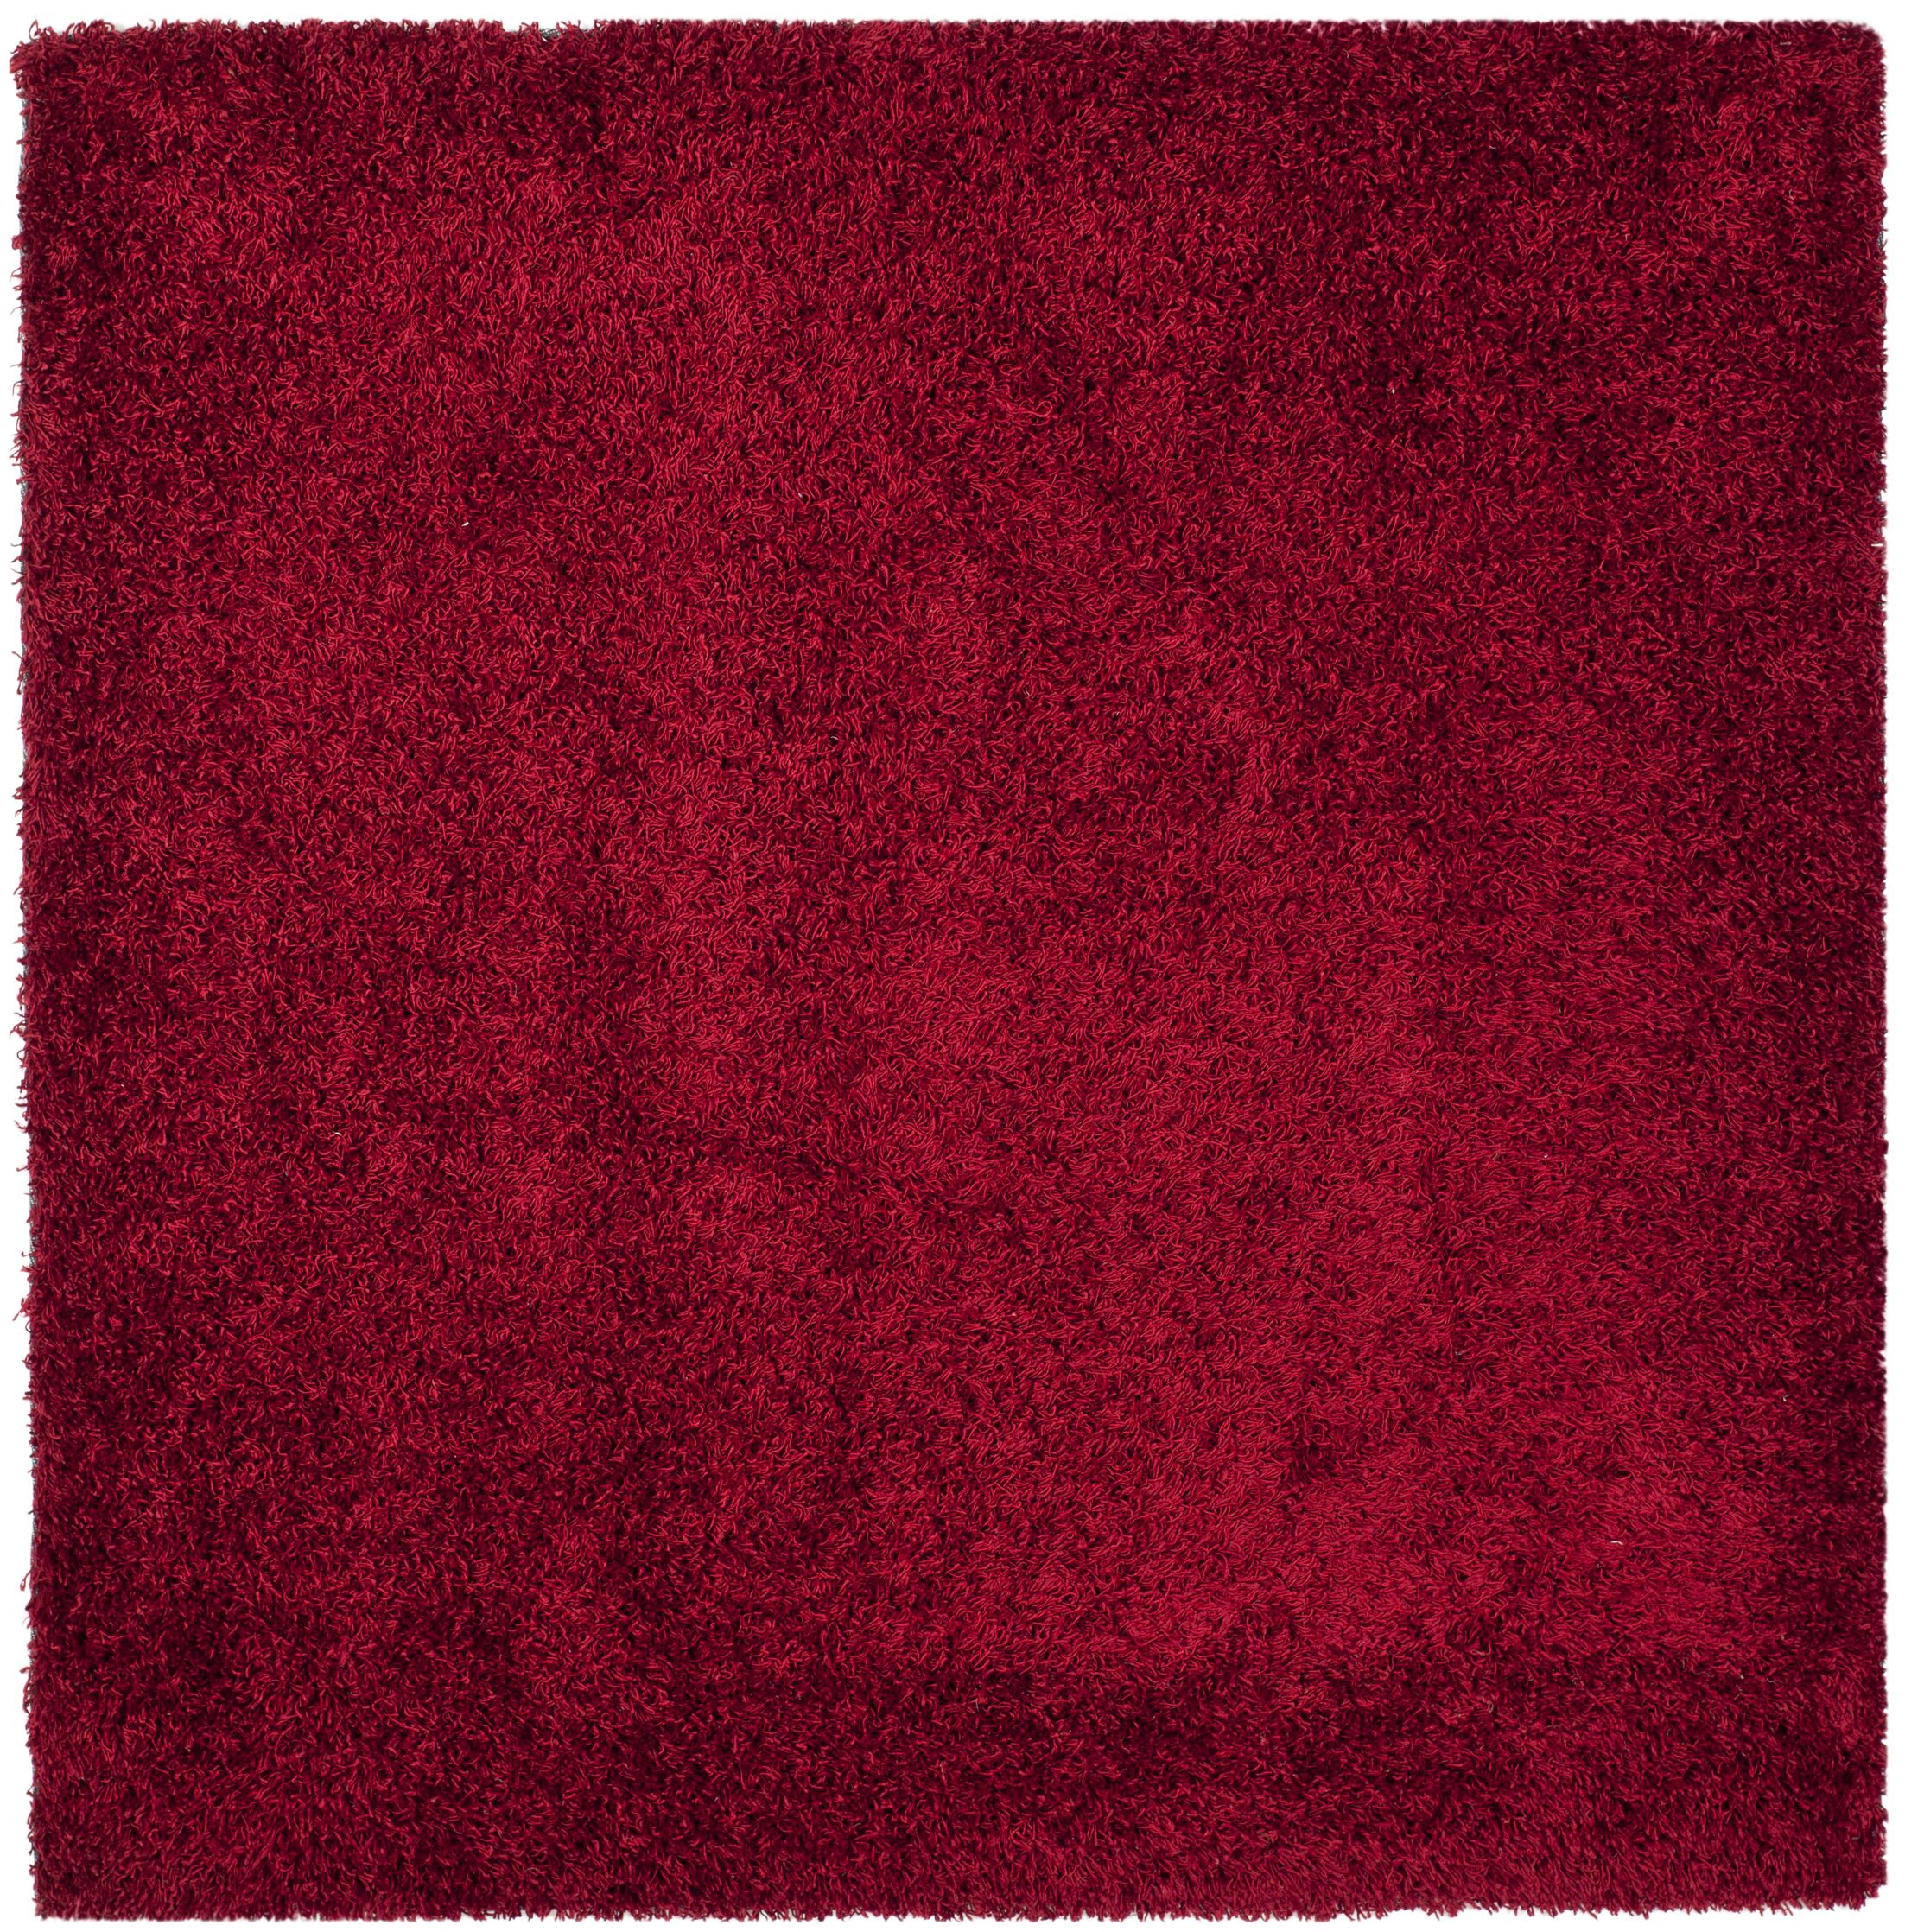 Starr Hill Red Area Rug Rug Size: Square 7'